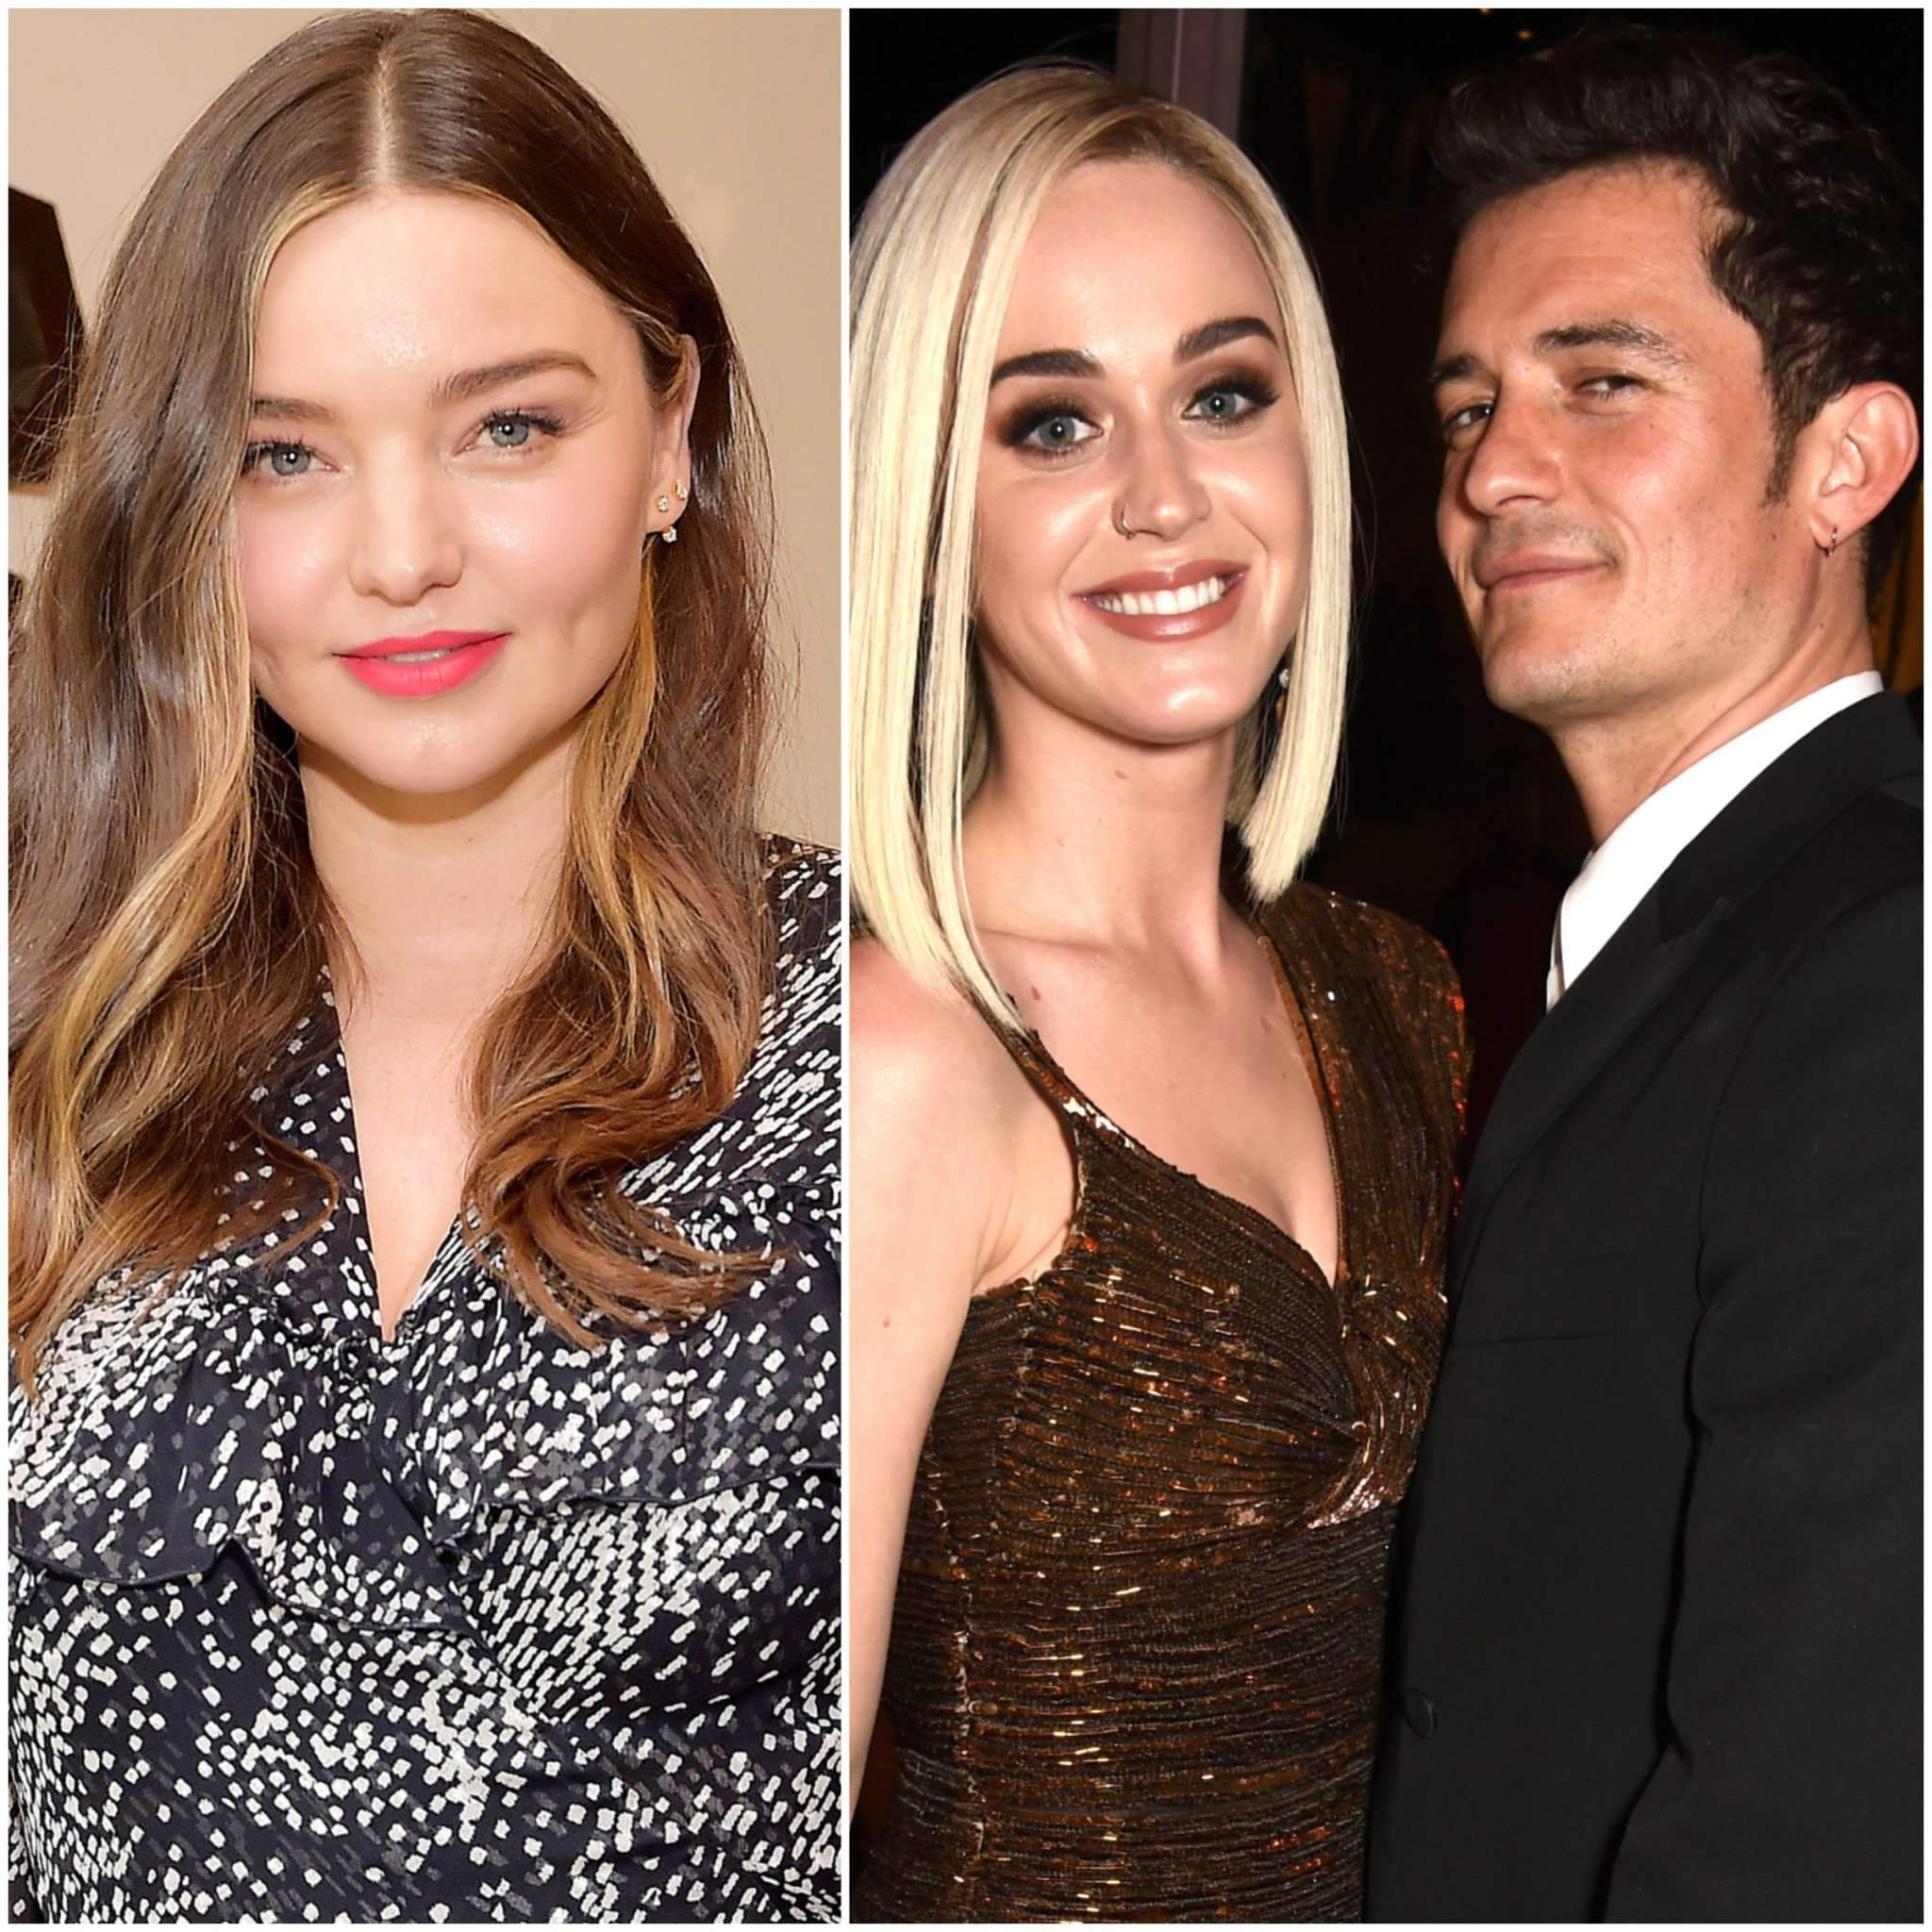 katy-perry-genuinely-friends-with-orlando-blooms-former-wife-miranda-kerr-she-cant-wait-for-the-model-to-meet-her-baby